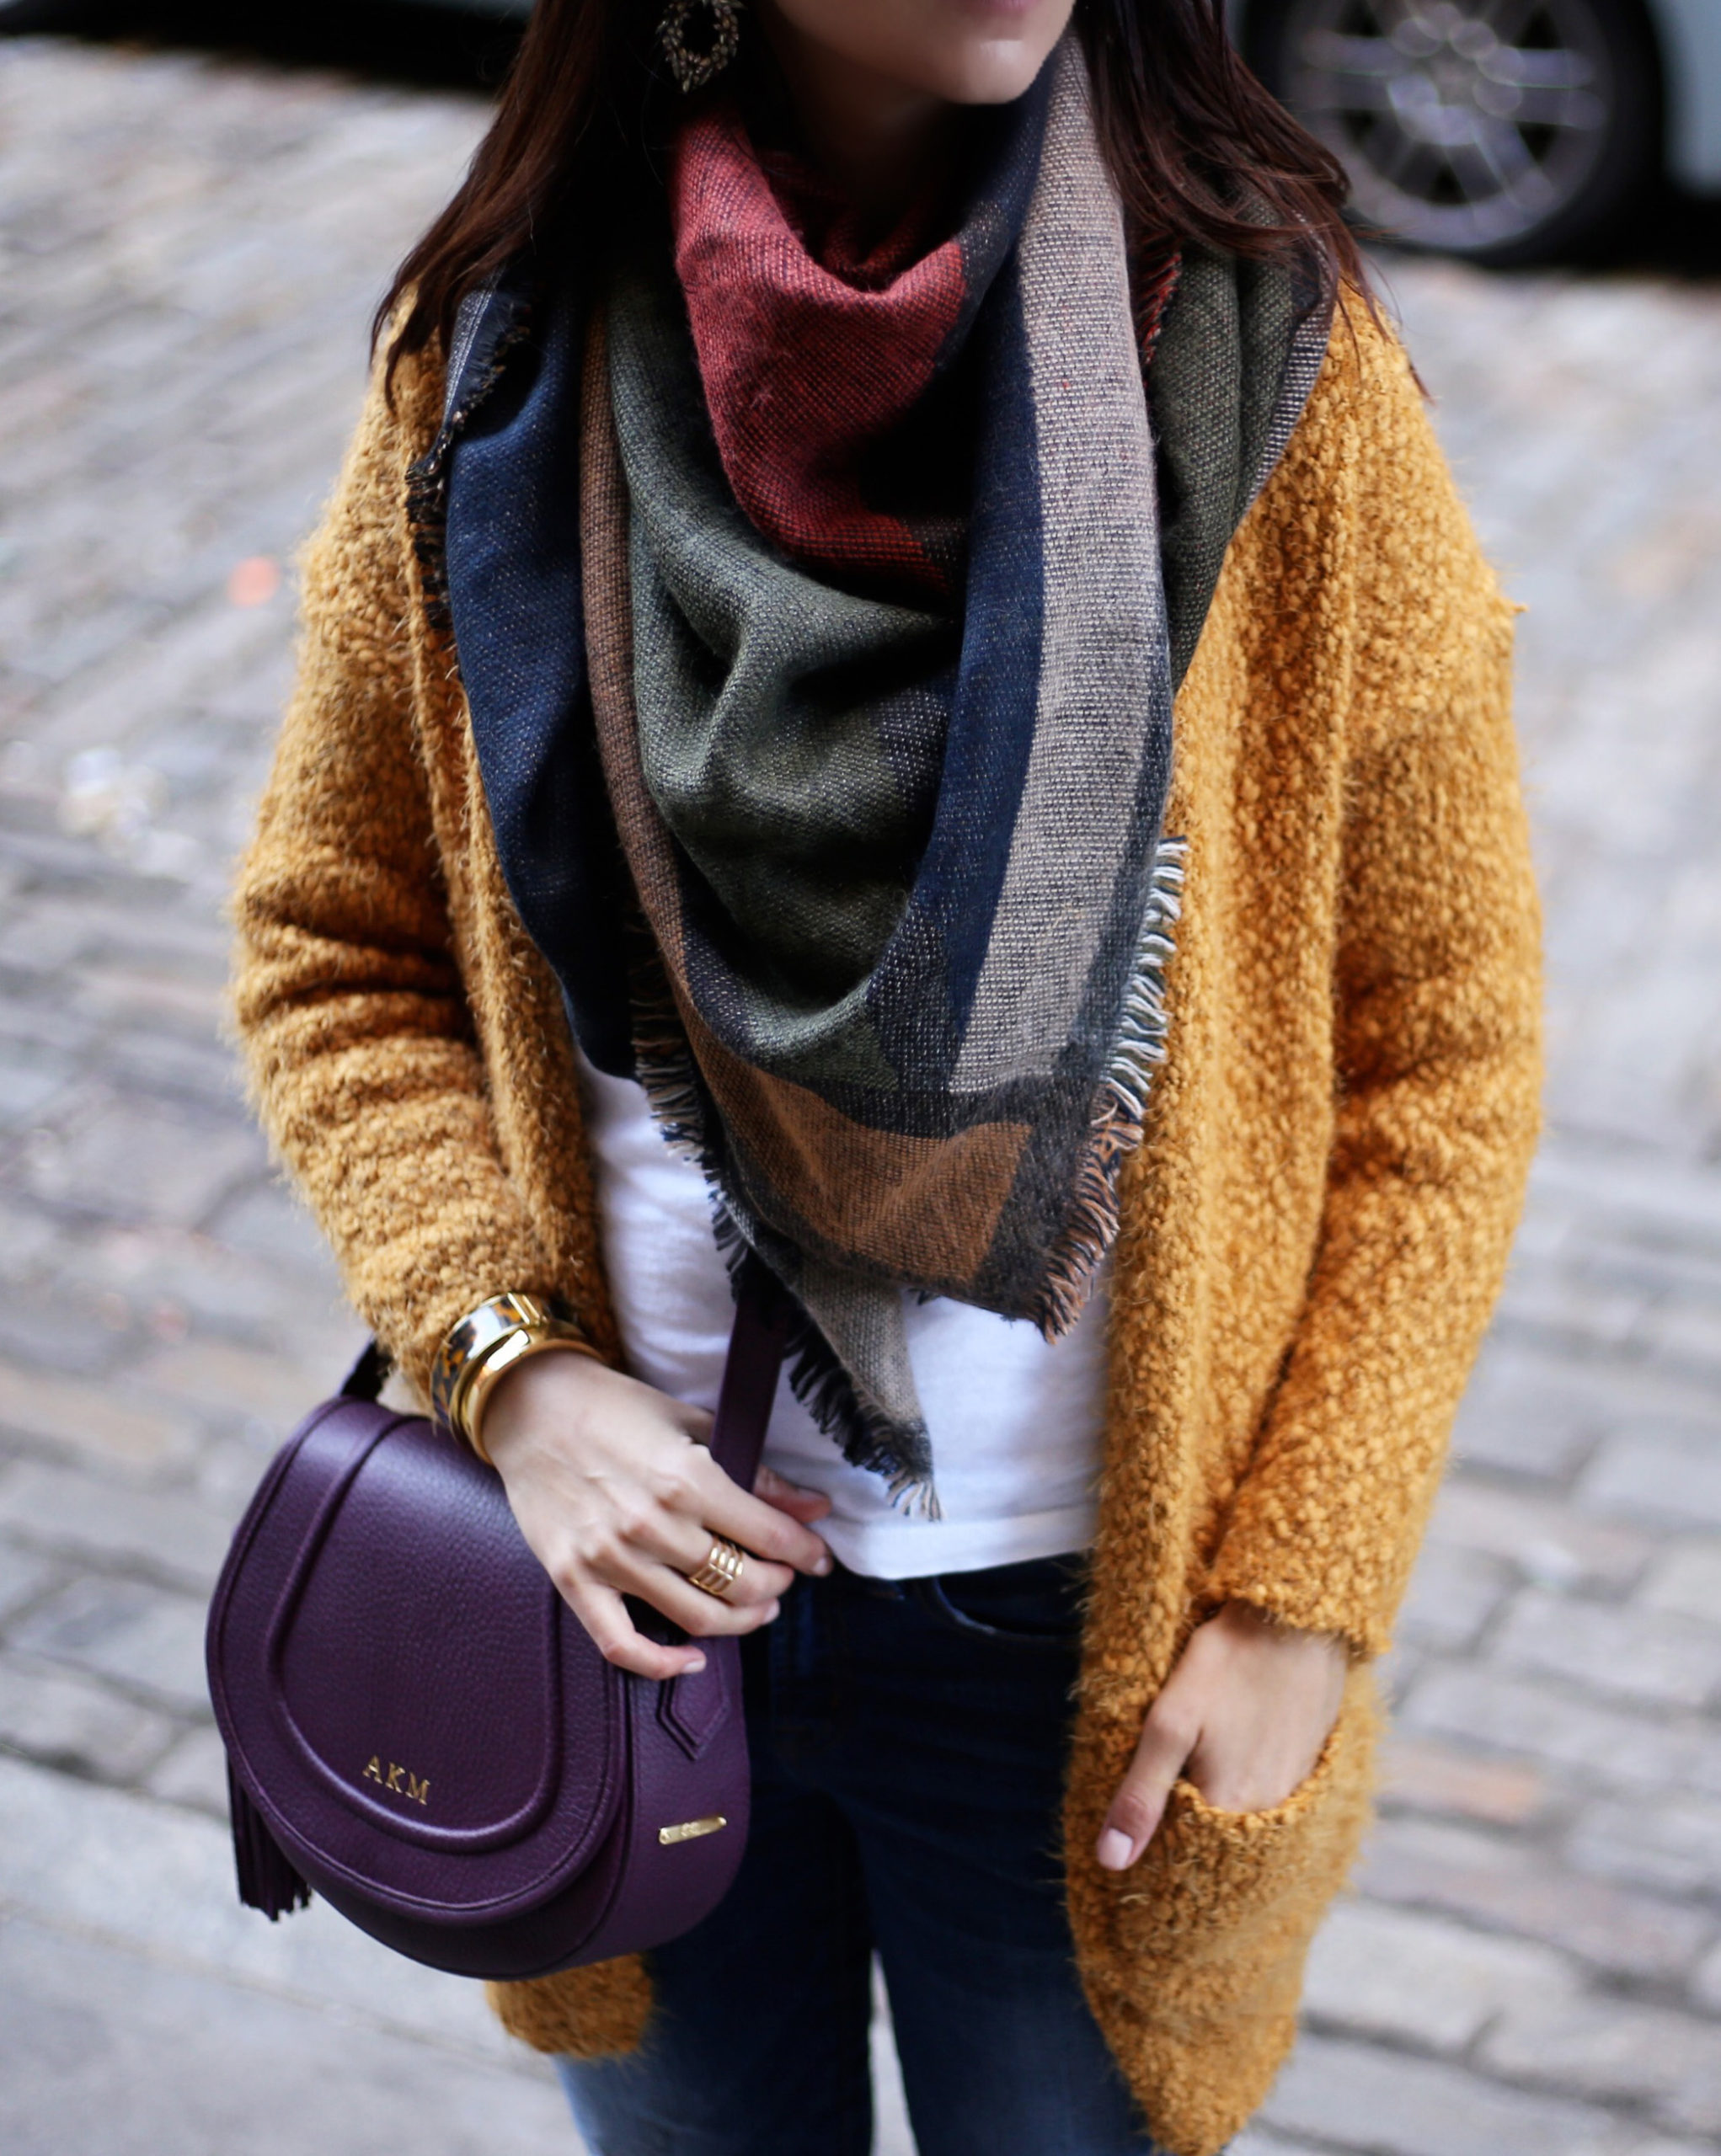 blogger anna monteiro of blushing rose style blog wearing BP blanket scarf, yeollow open front cardigan and Gigi new York crossbody bag